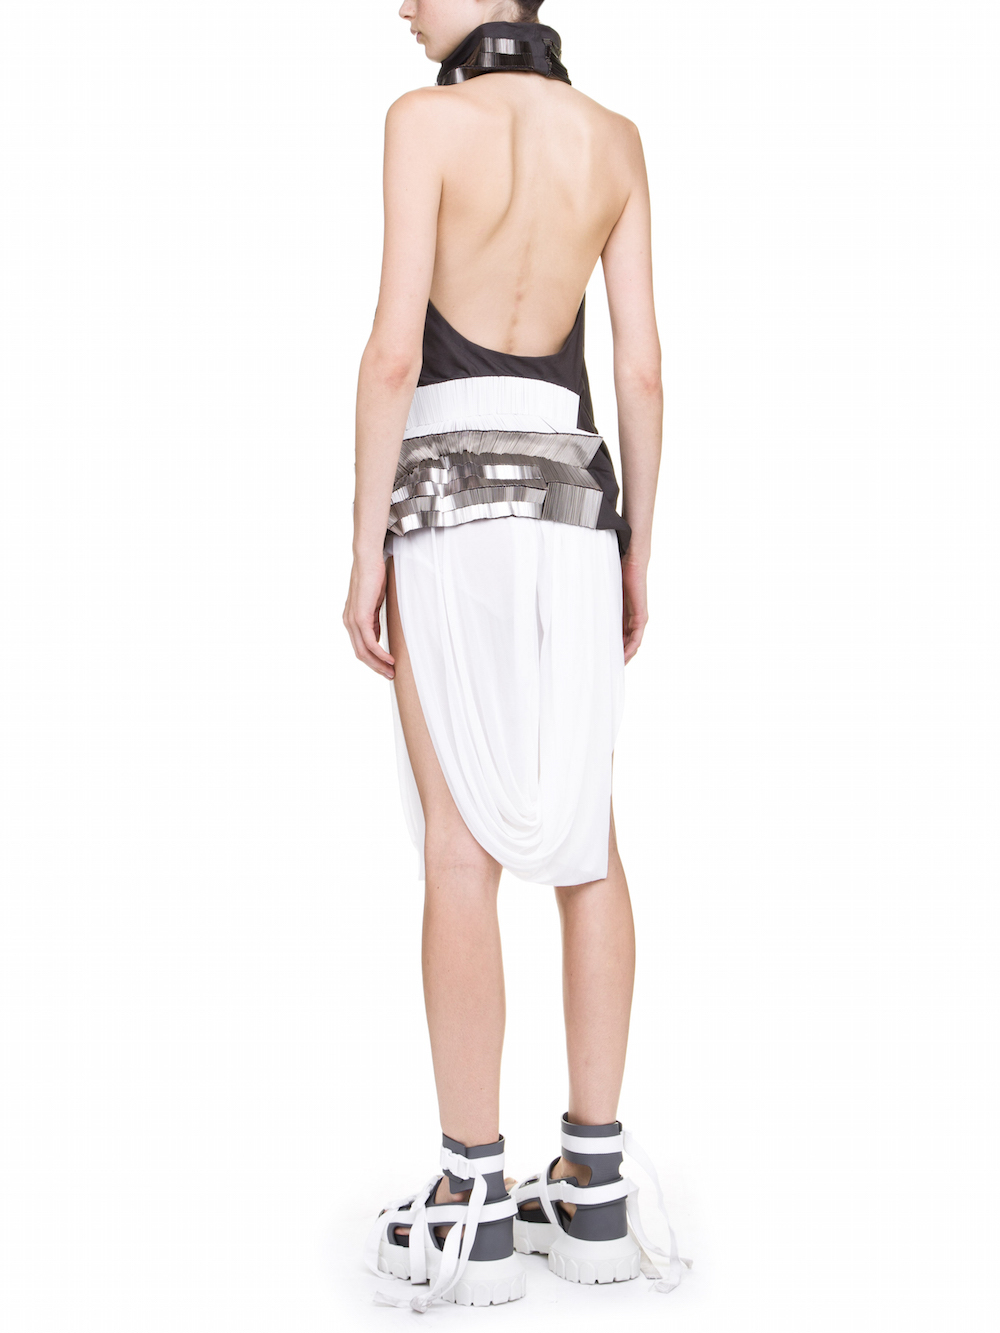 RICK OWENS ELIPSE TUNIC IN GREY COVERED BY  SILVER BUGLE BEADS